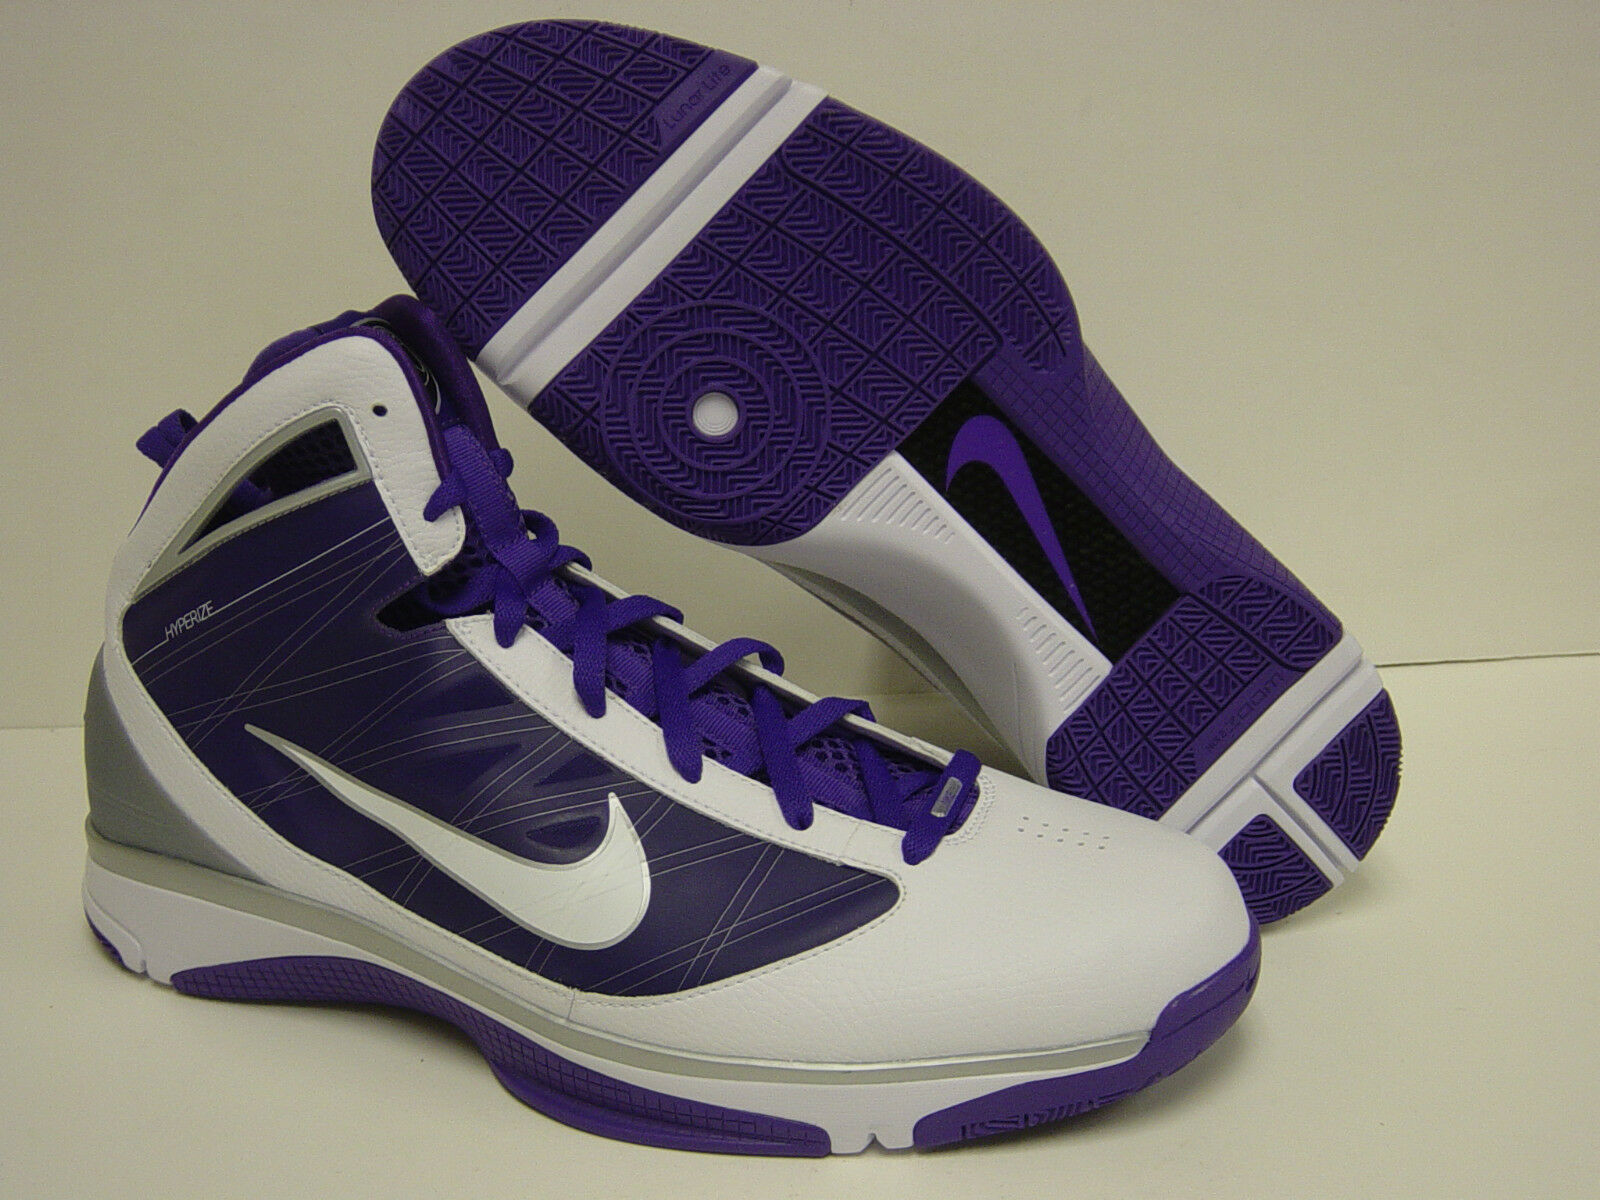 NEW Mens NIKE Hyperize TB 367181 118 White Purple Basketball Sneakers shoes